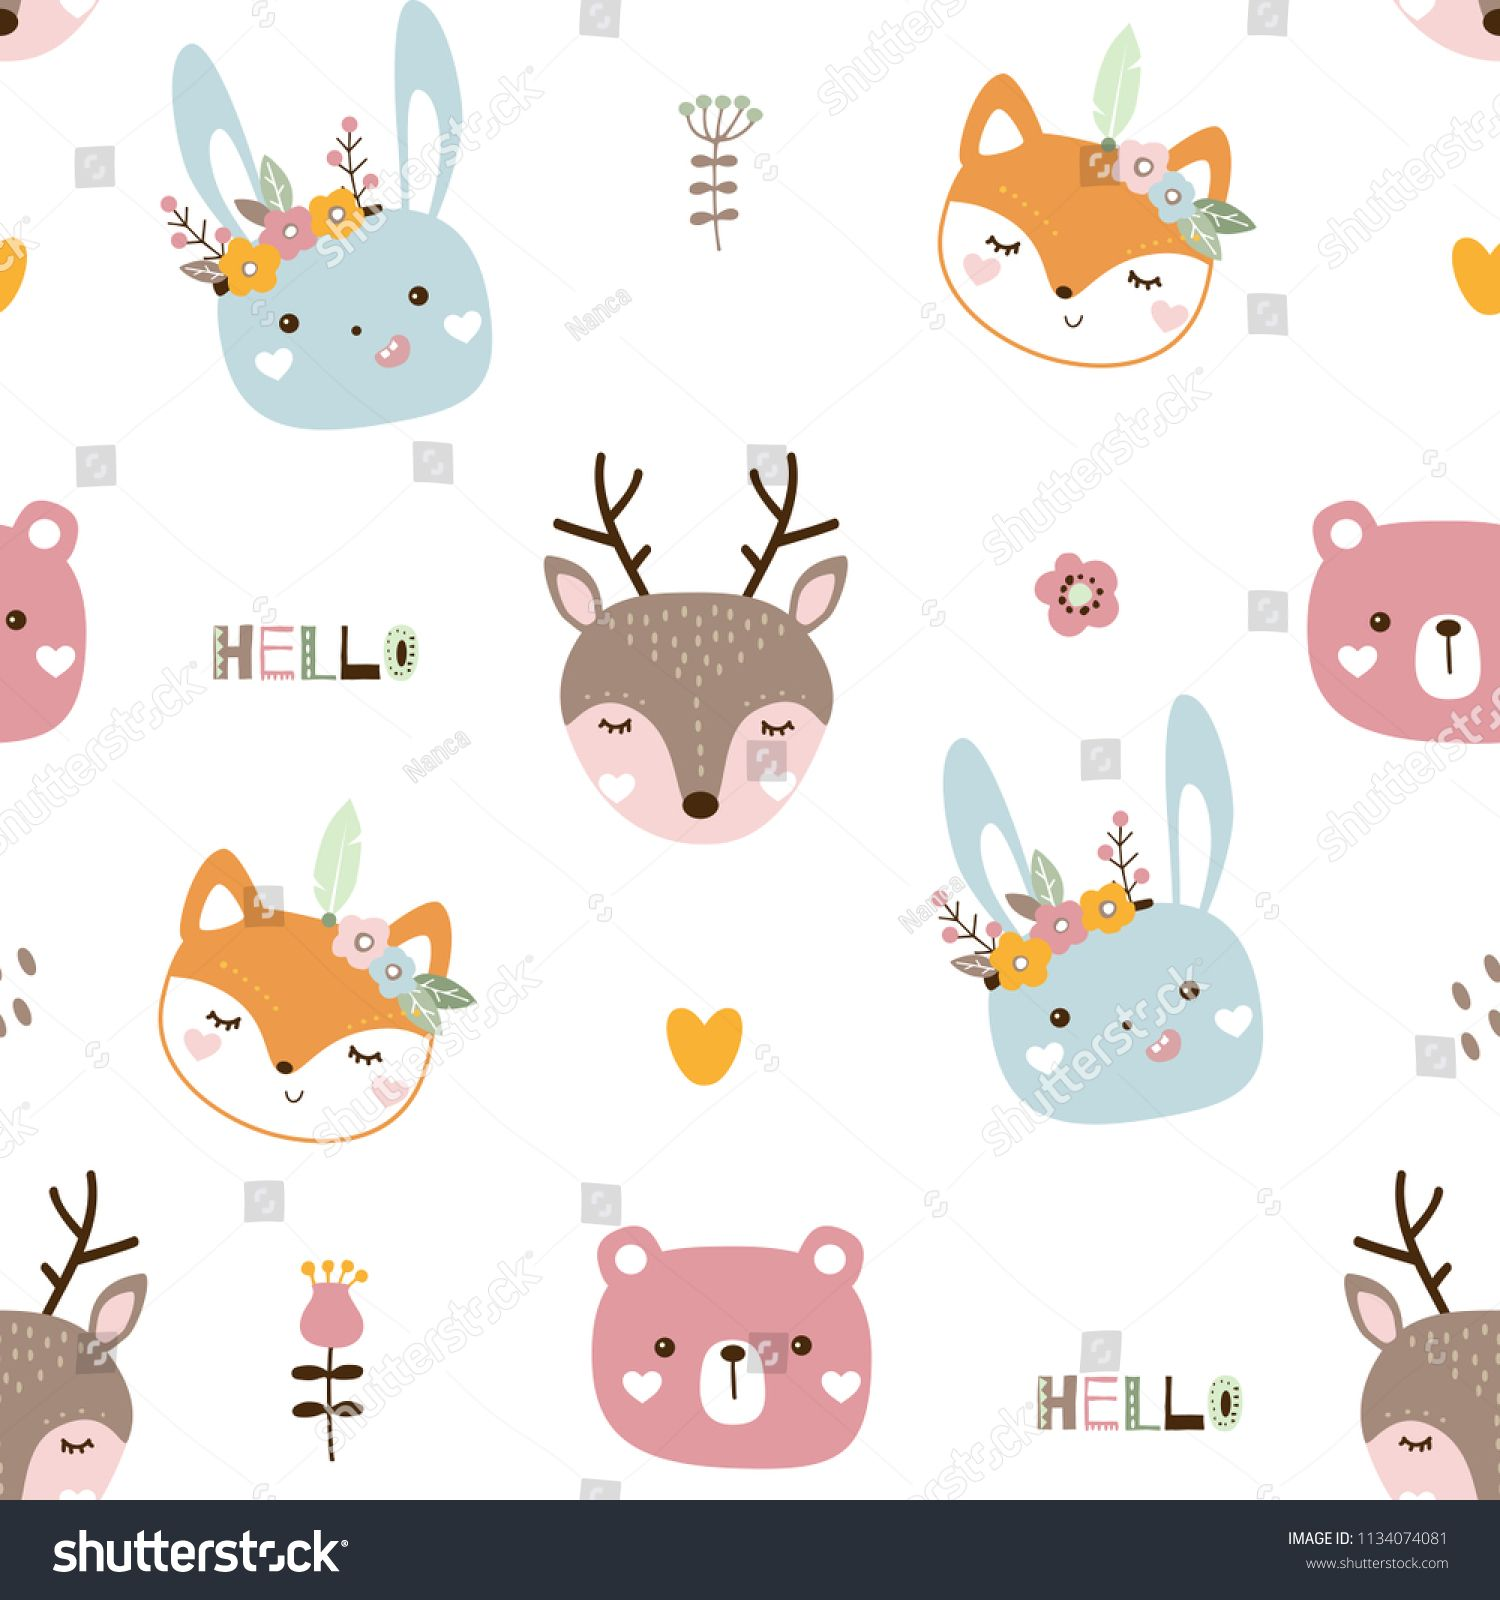 Seamless Pattern With Cute Animals Kids Animals On White Background Vector Illustration Ad Ad Cute Animals For Kids Seamless Patterns Printing On Fabric